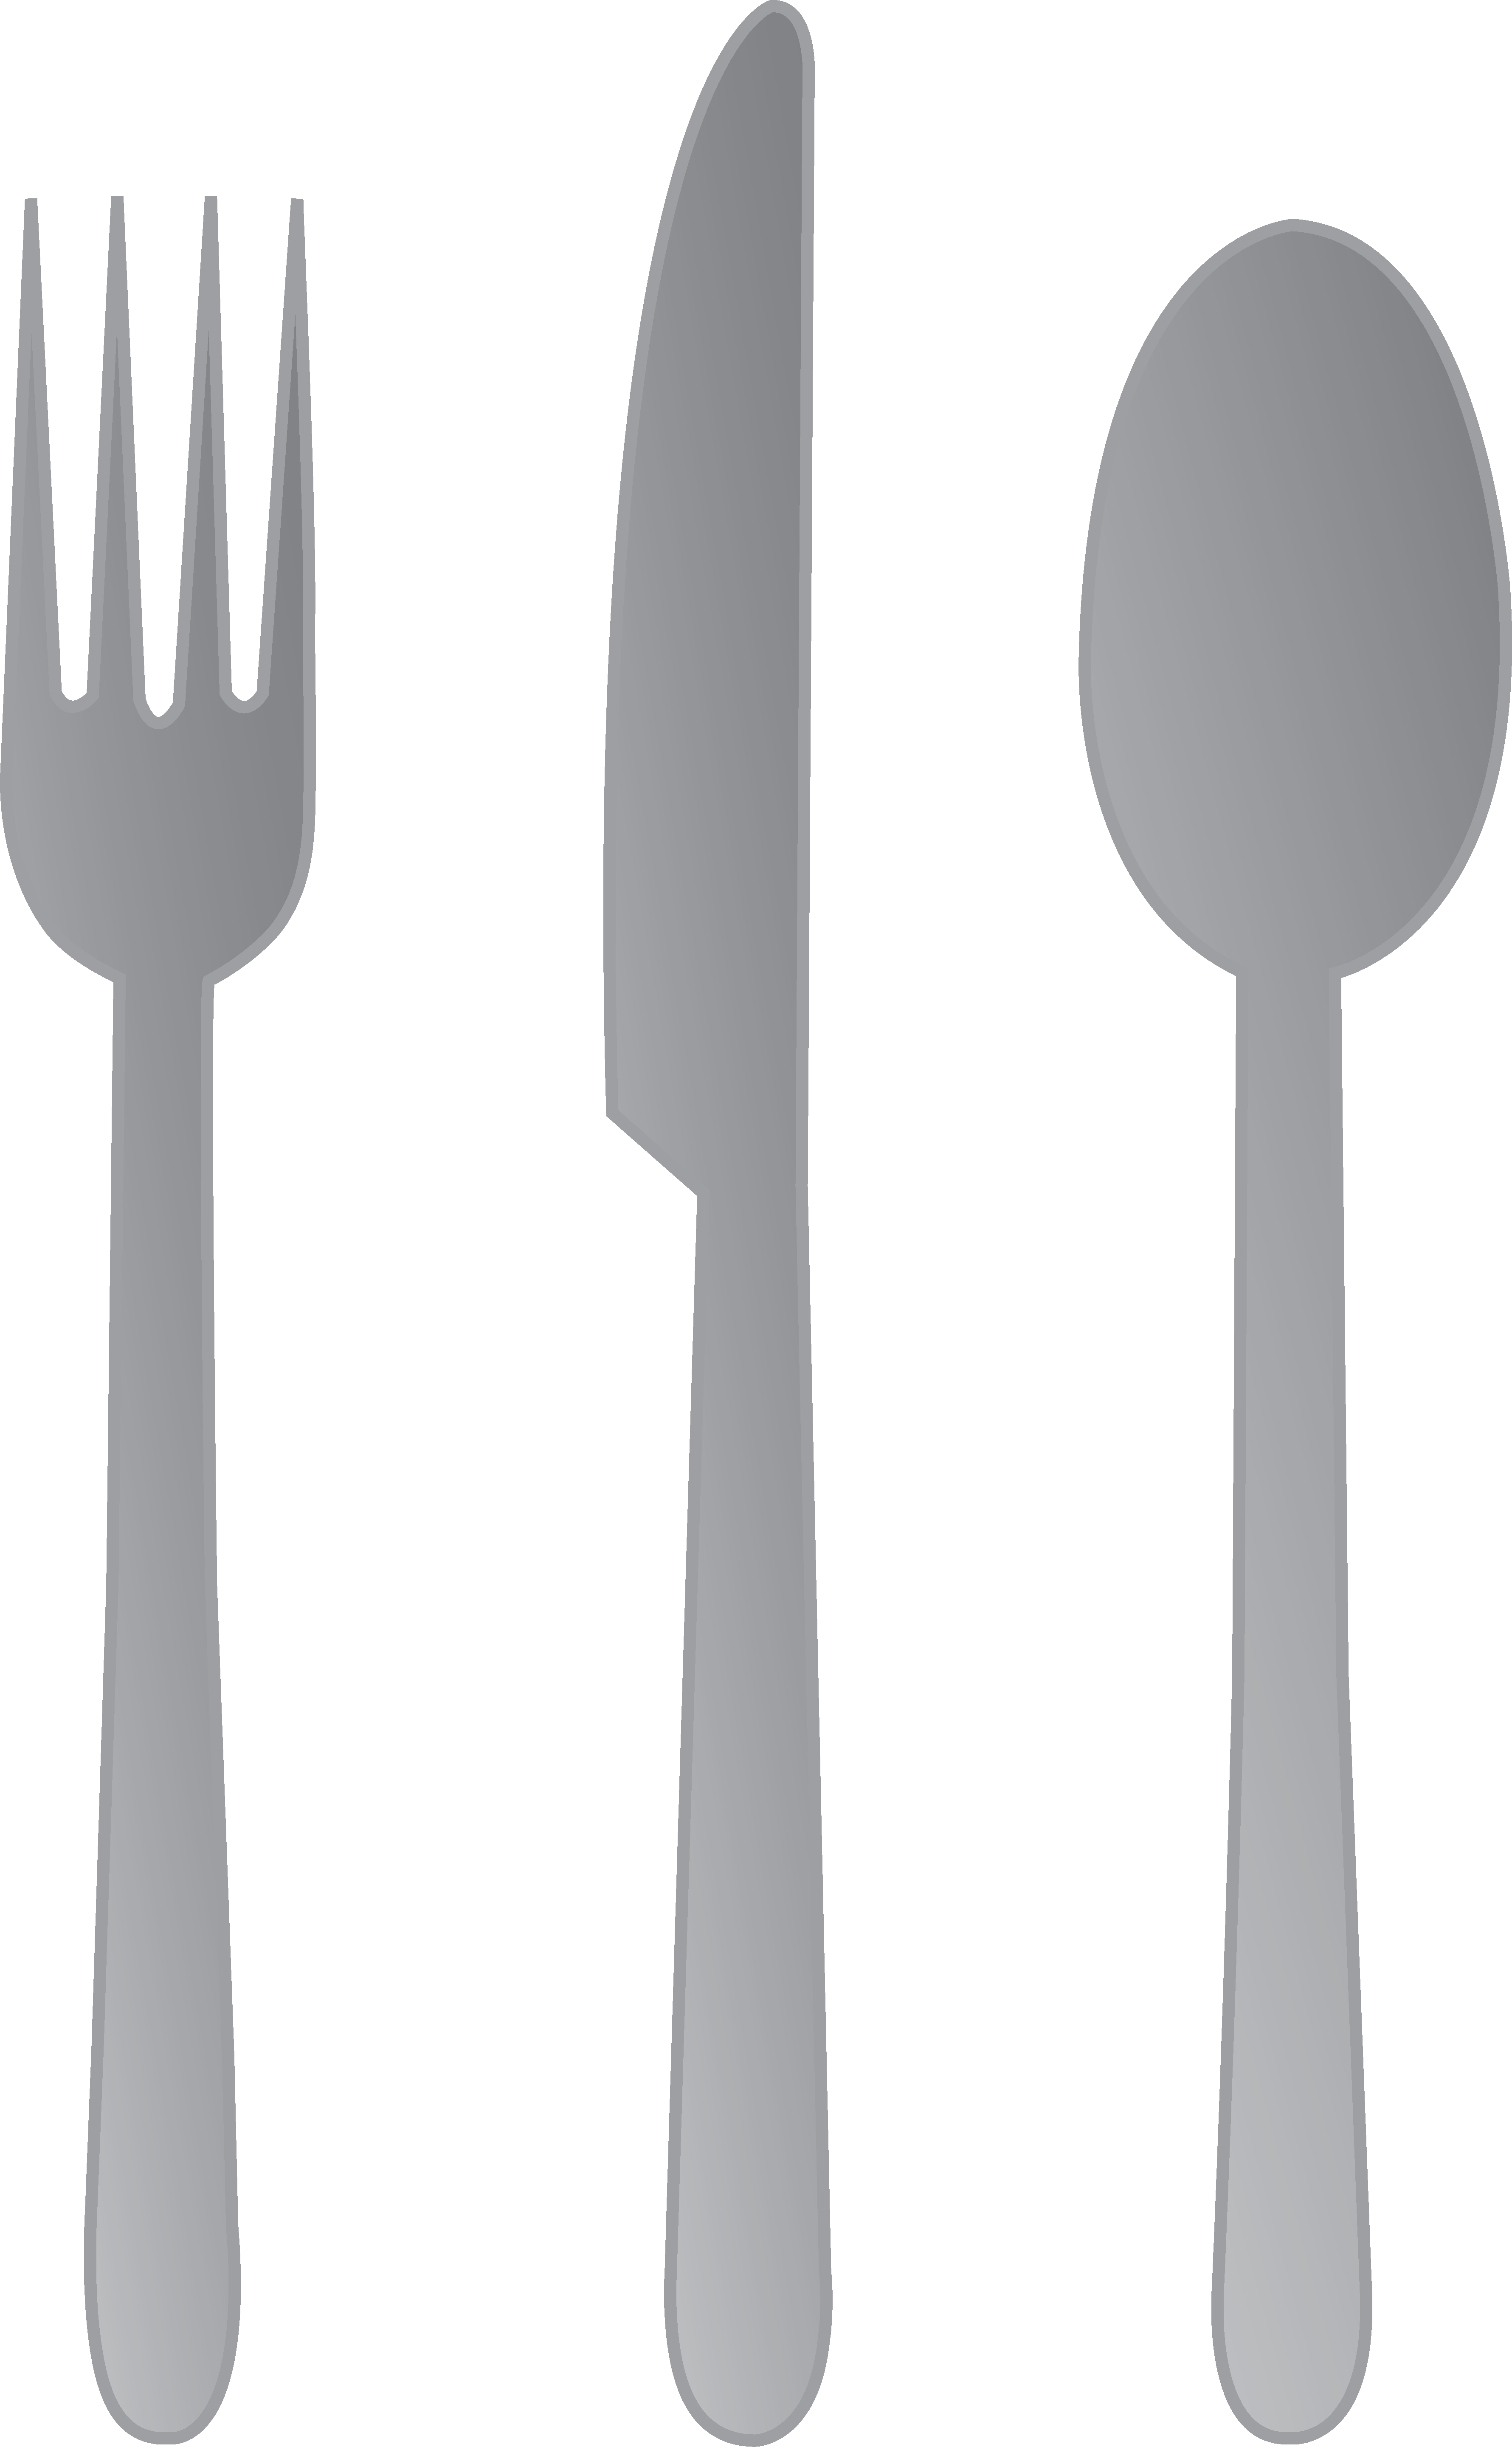 Spoon fork knife cliparts clip free library Fork Knife and Spoon - Free Clip Art clip free library